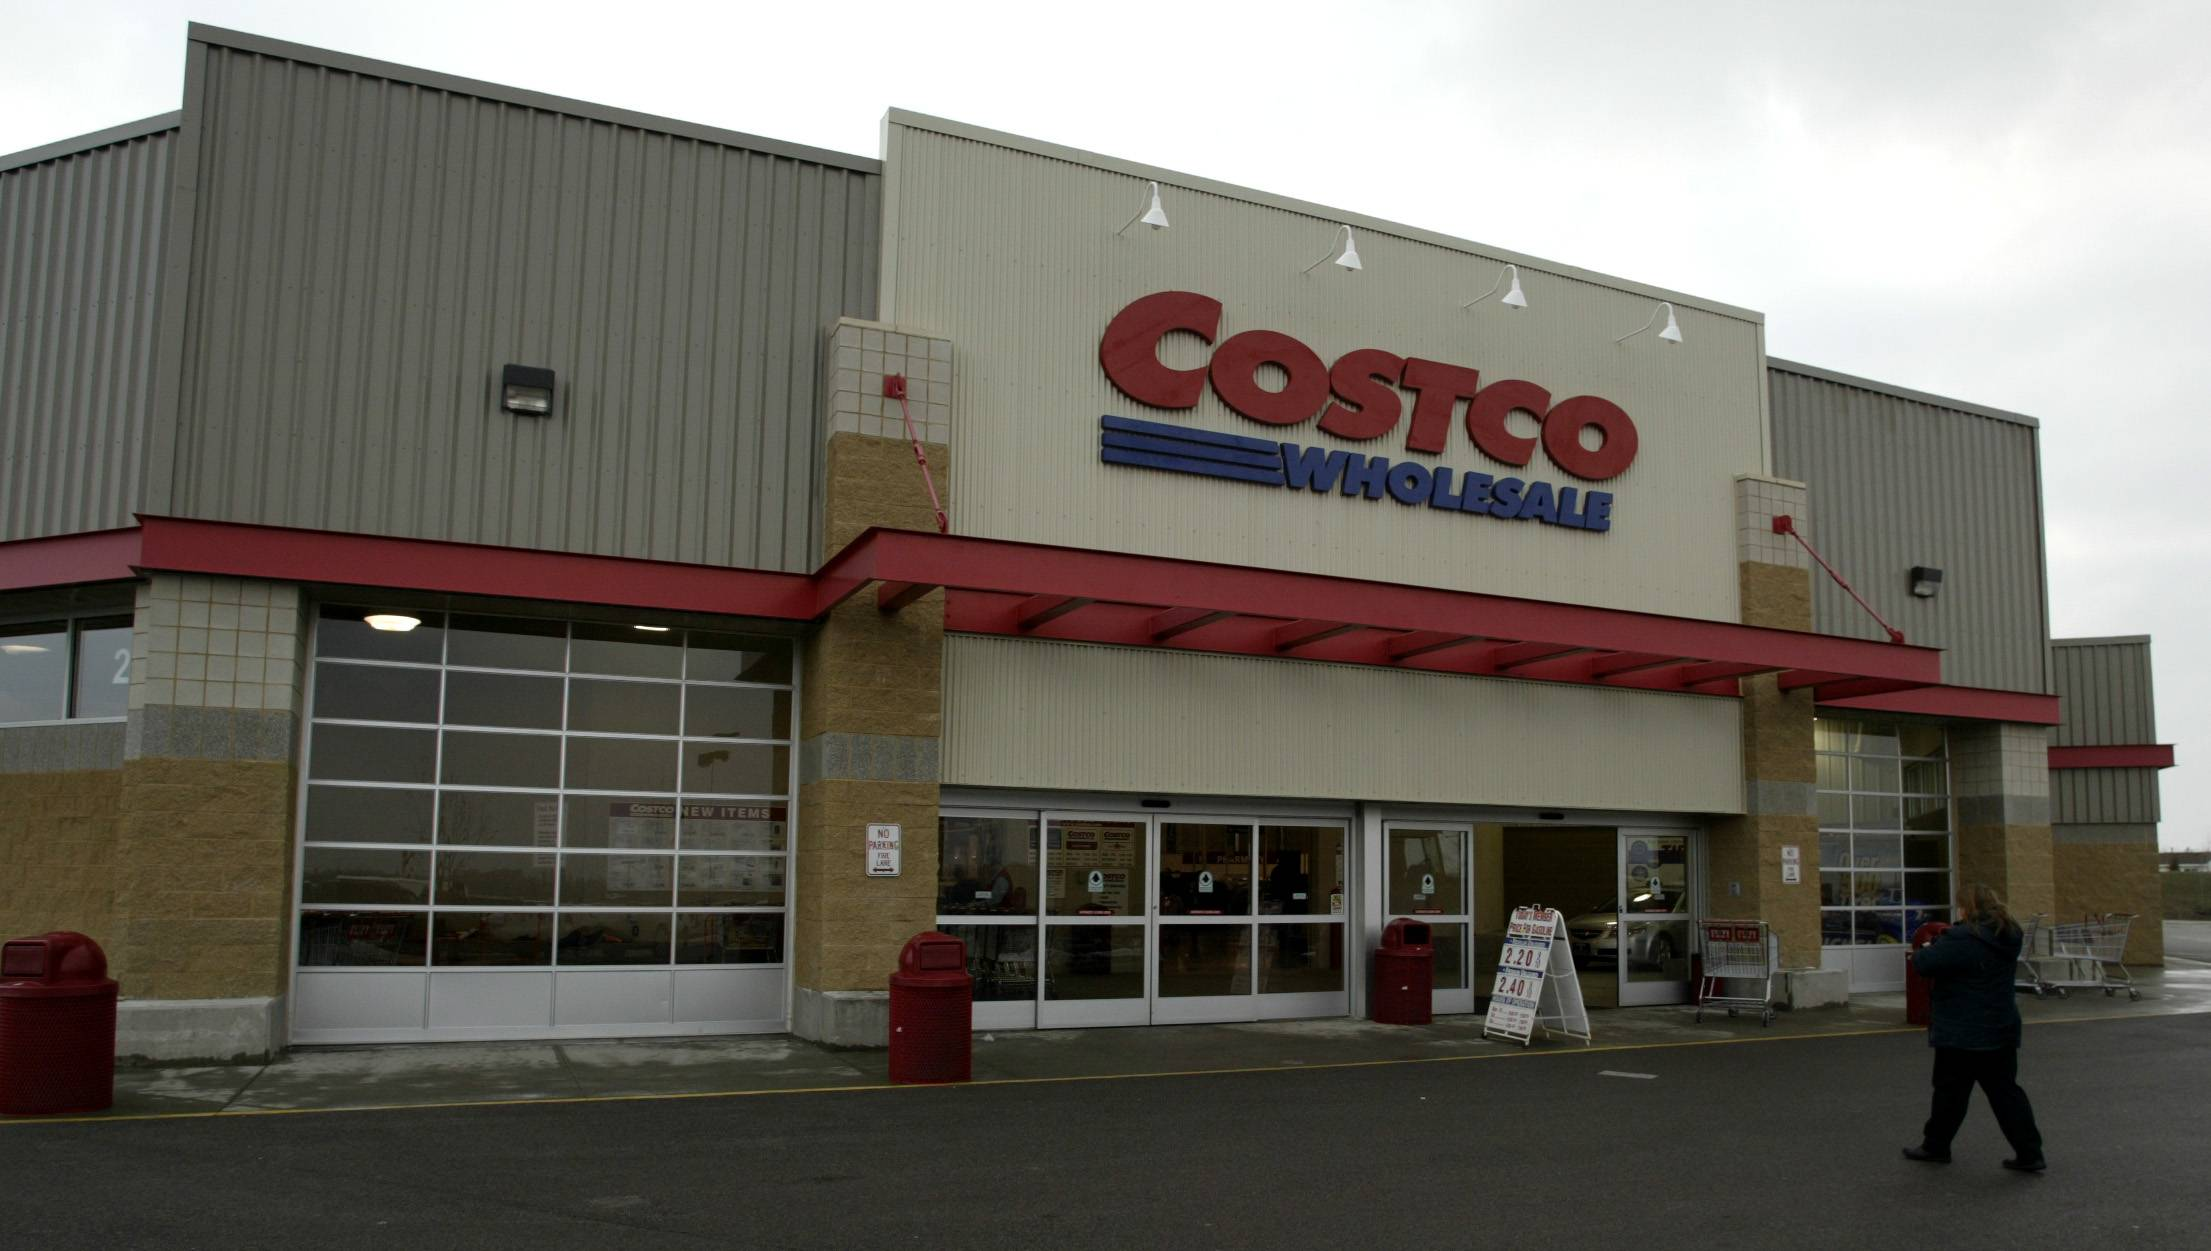 Costco, which opened July 2004 along Randall Road in Lake in the Hills, received a $1.6 million reimbursement from the village from sales tax revenues as an incentive to build the 136,000-square-foot store. The incentive helped offset costs associated with preparing the site for development, including significant grading work and construction of a large retaining wall.